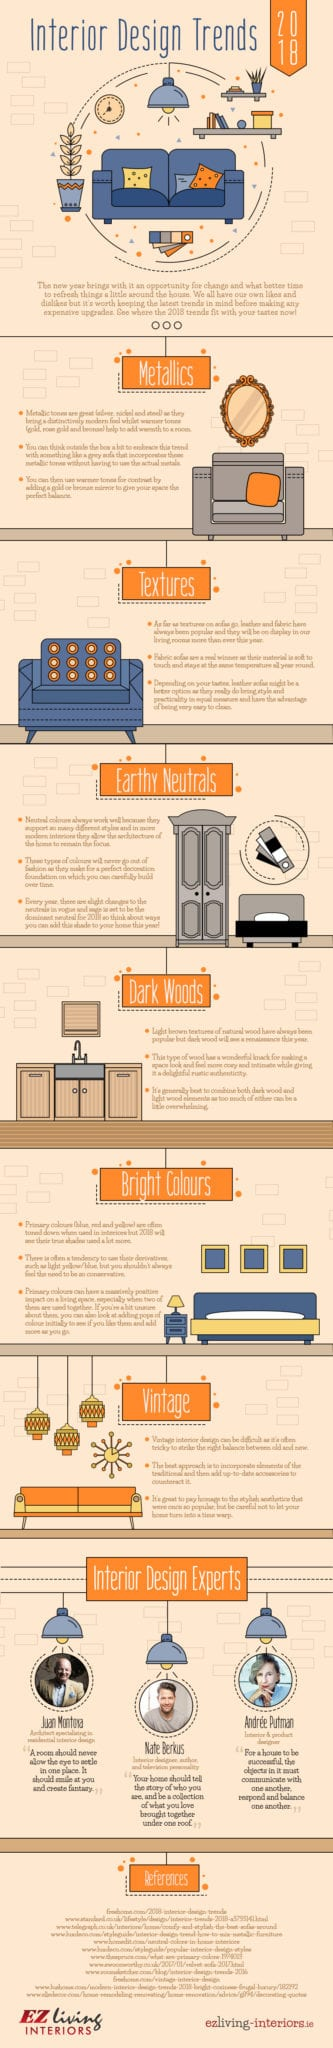 interior design trends 2018 infographic - Interior Design Trends for 2018